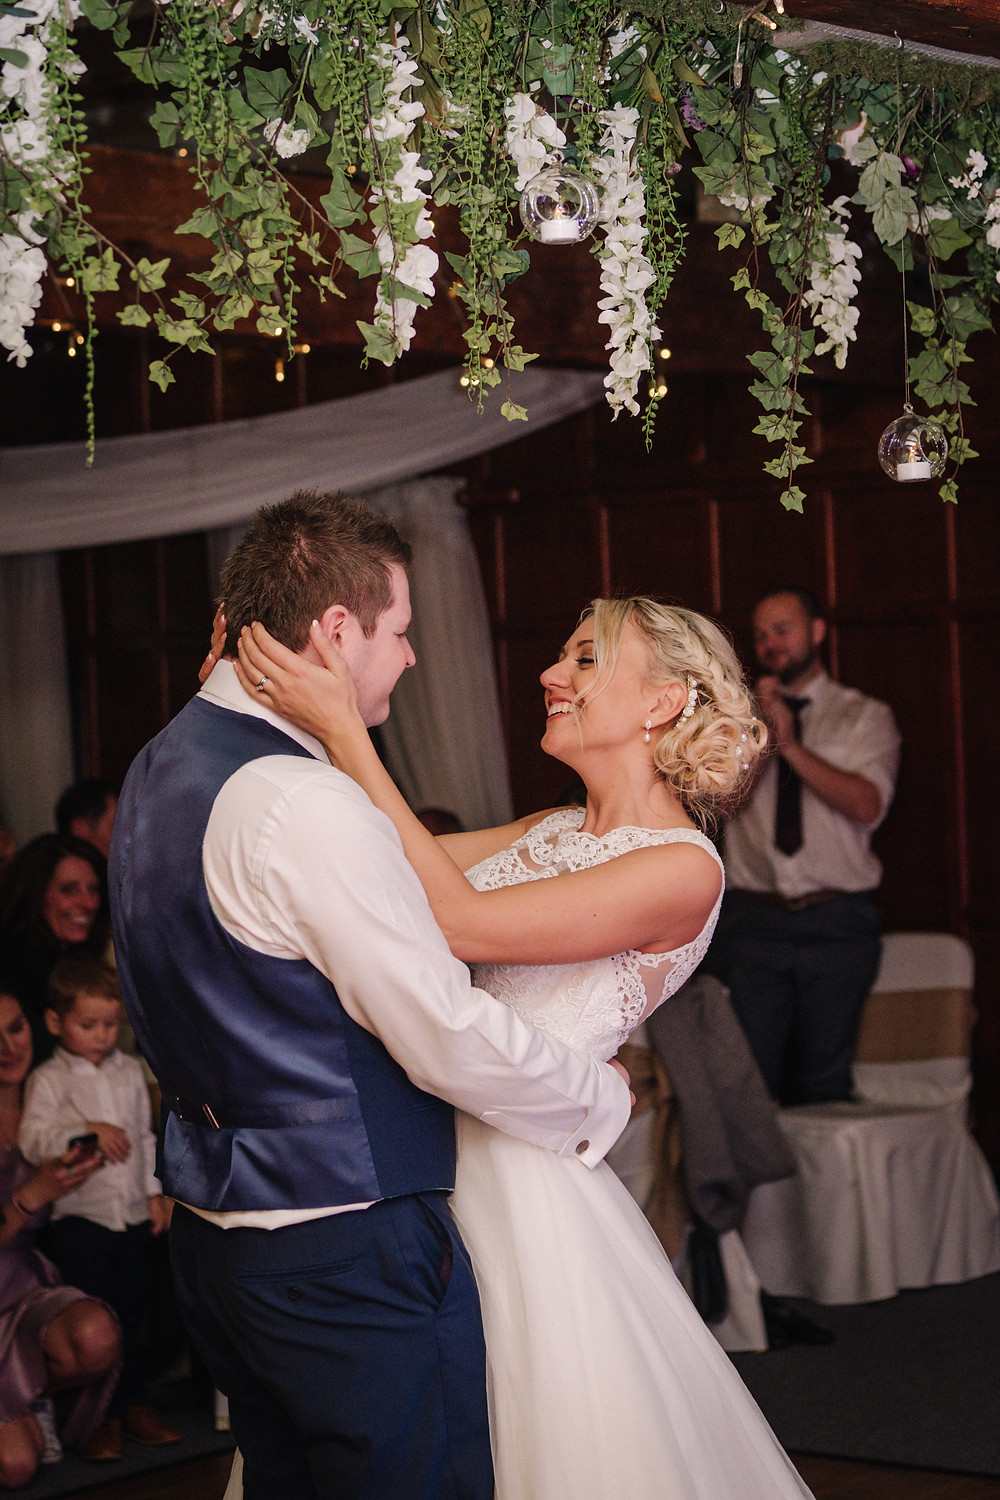 The First Dance, Nessworthy Photography, Lancashire